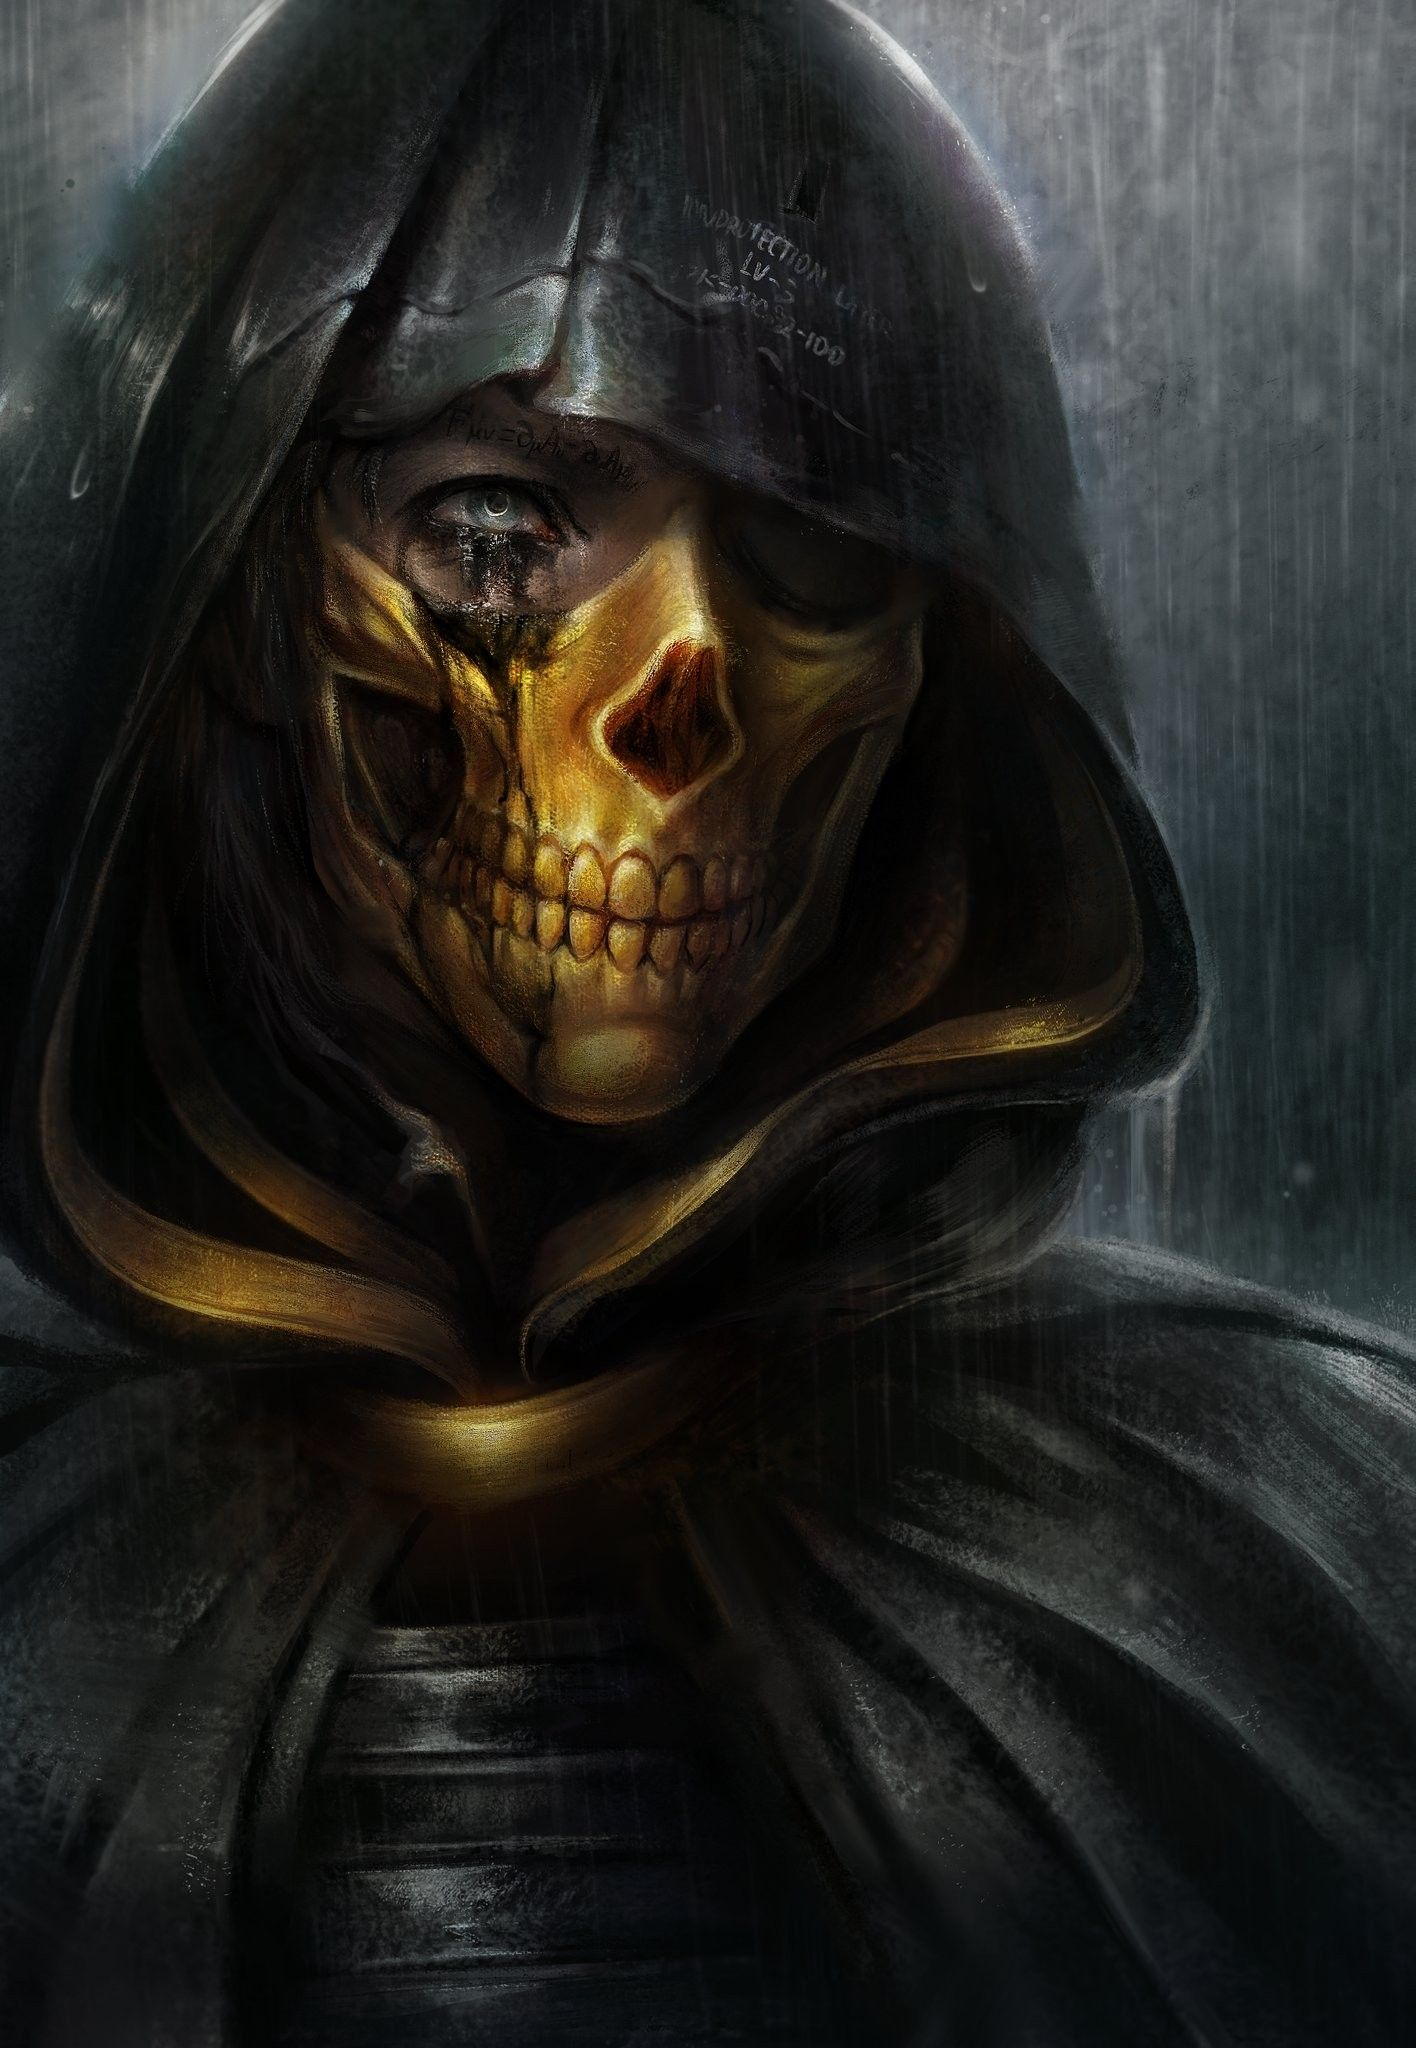 Death Stranding Gold Skull Mask Higgs Troy Baker 4k 3840x2160 Wallpaper Troy Baker Skull Mask Gold Skull